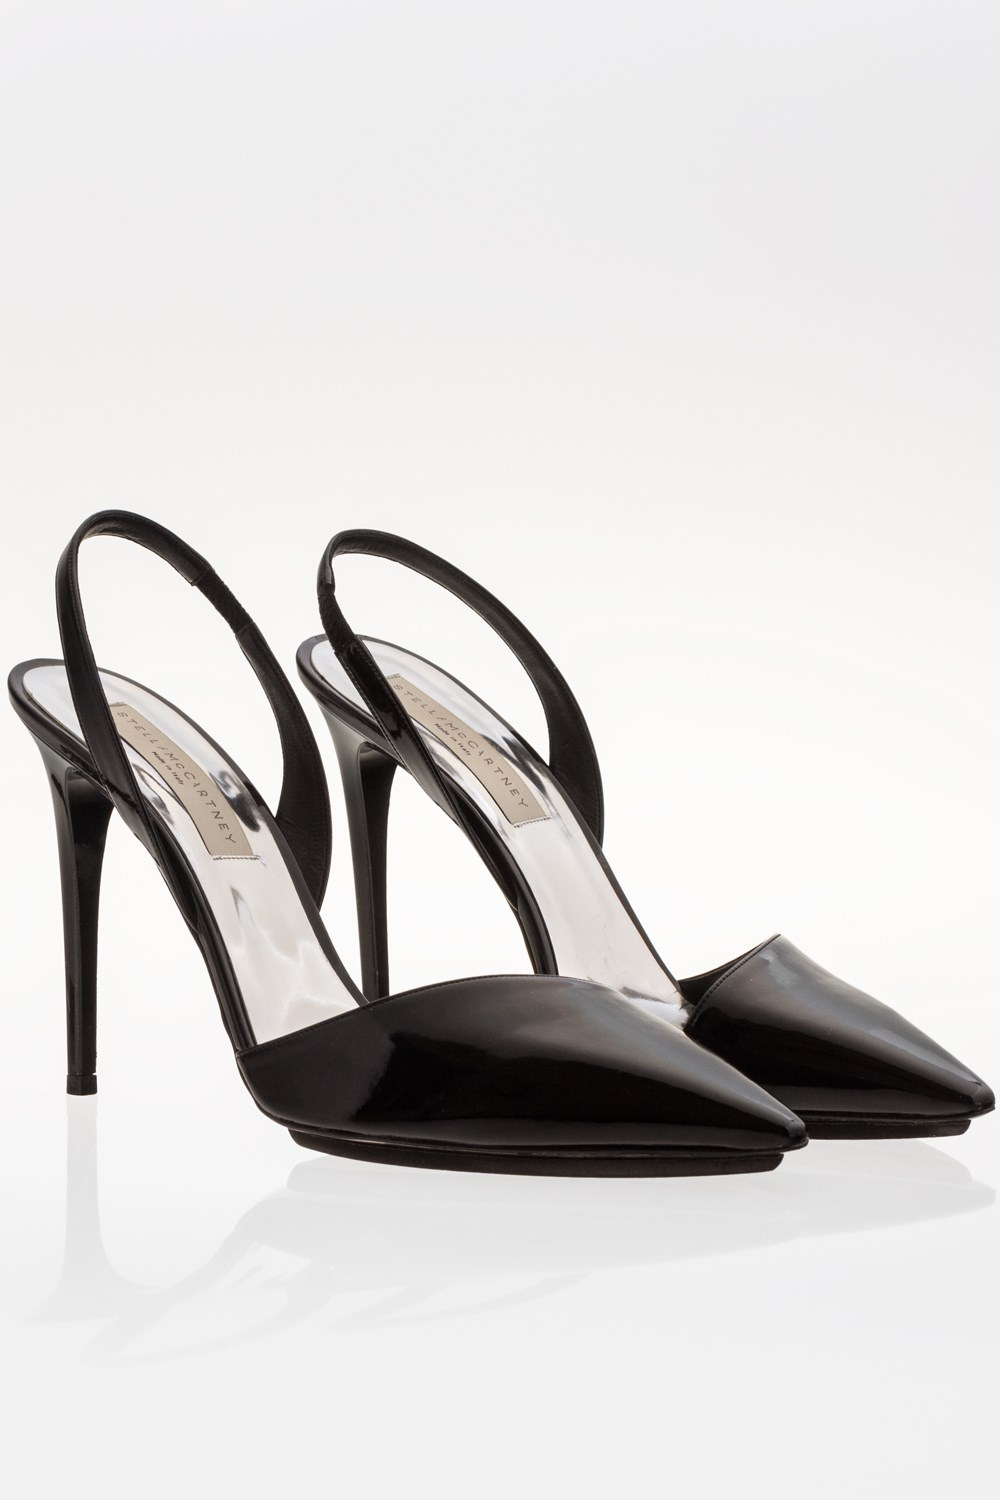 Morgana Black Patent Leather Pointed